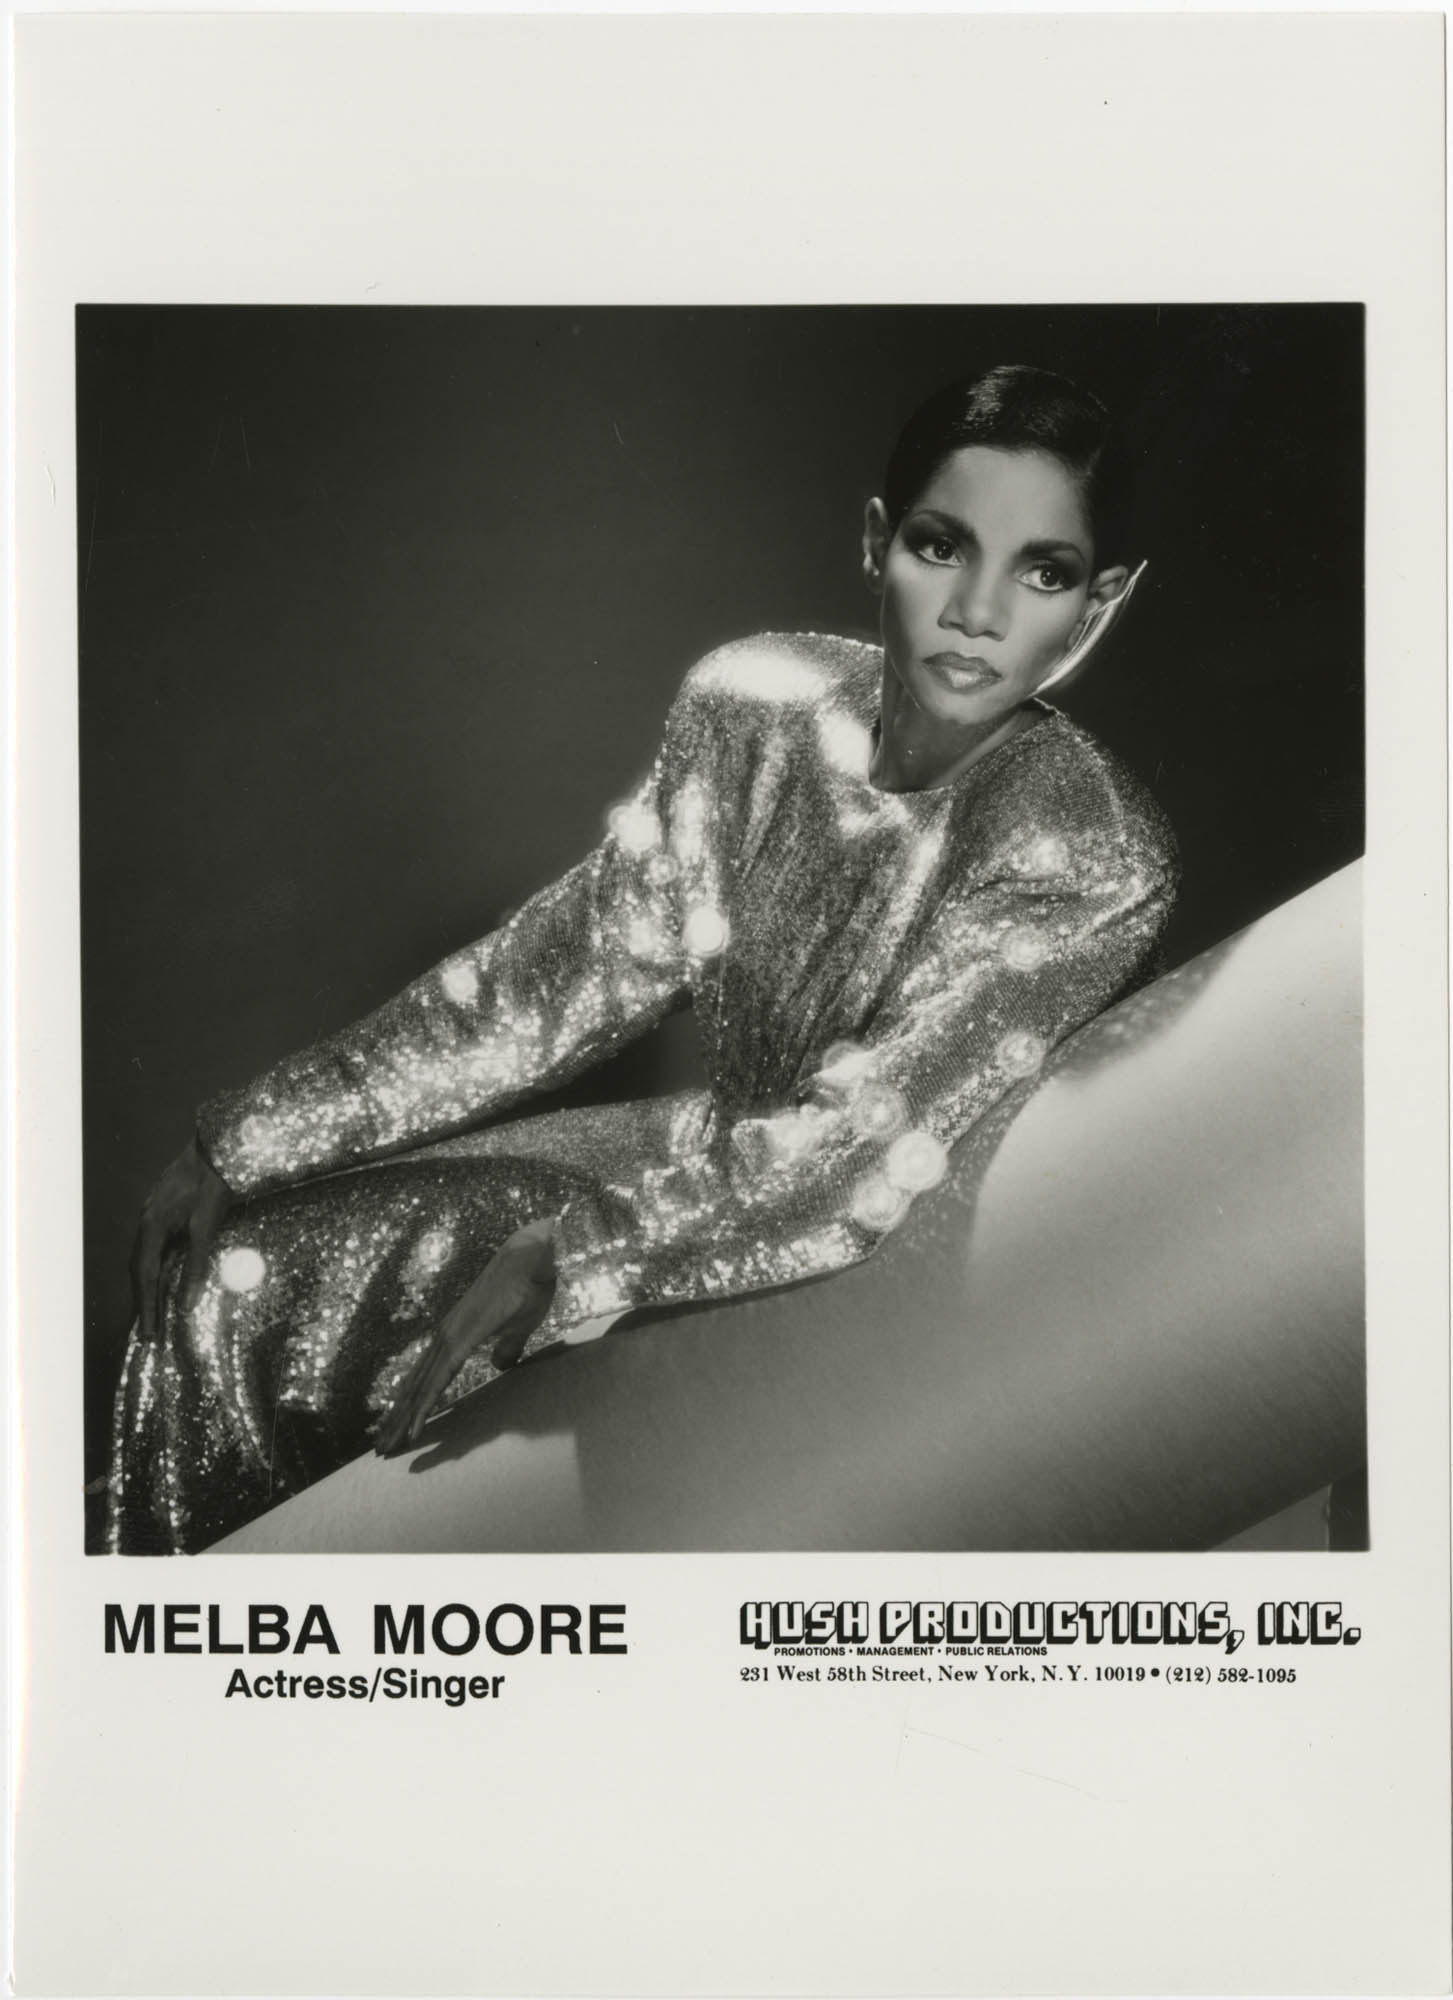 Photograph, Melba Moore, Hush Productions, Inc.